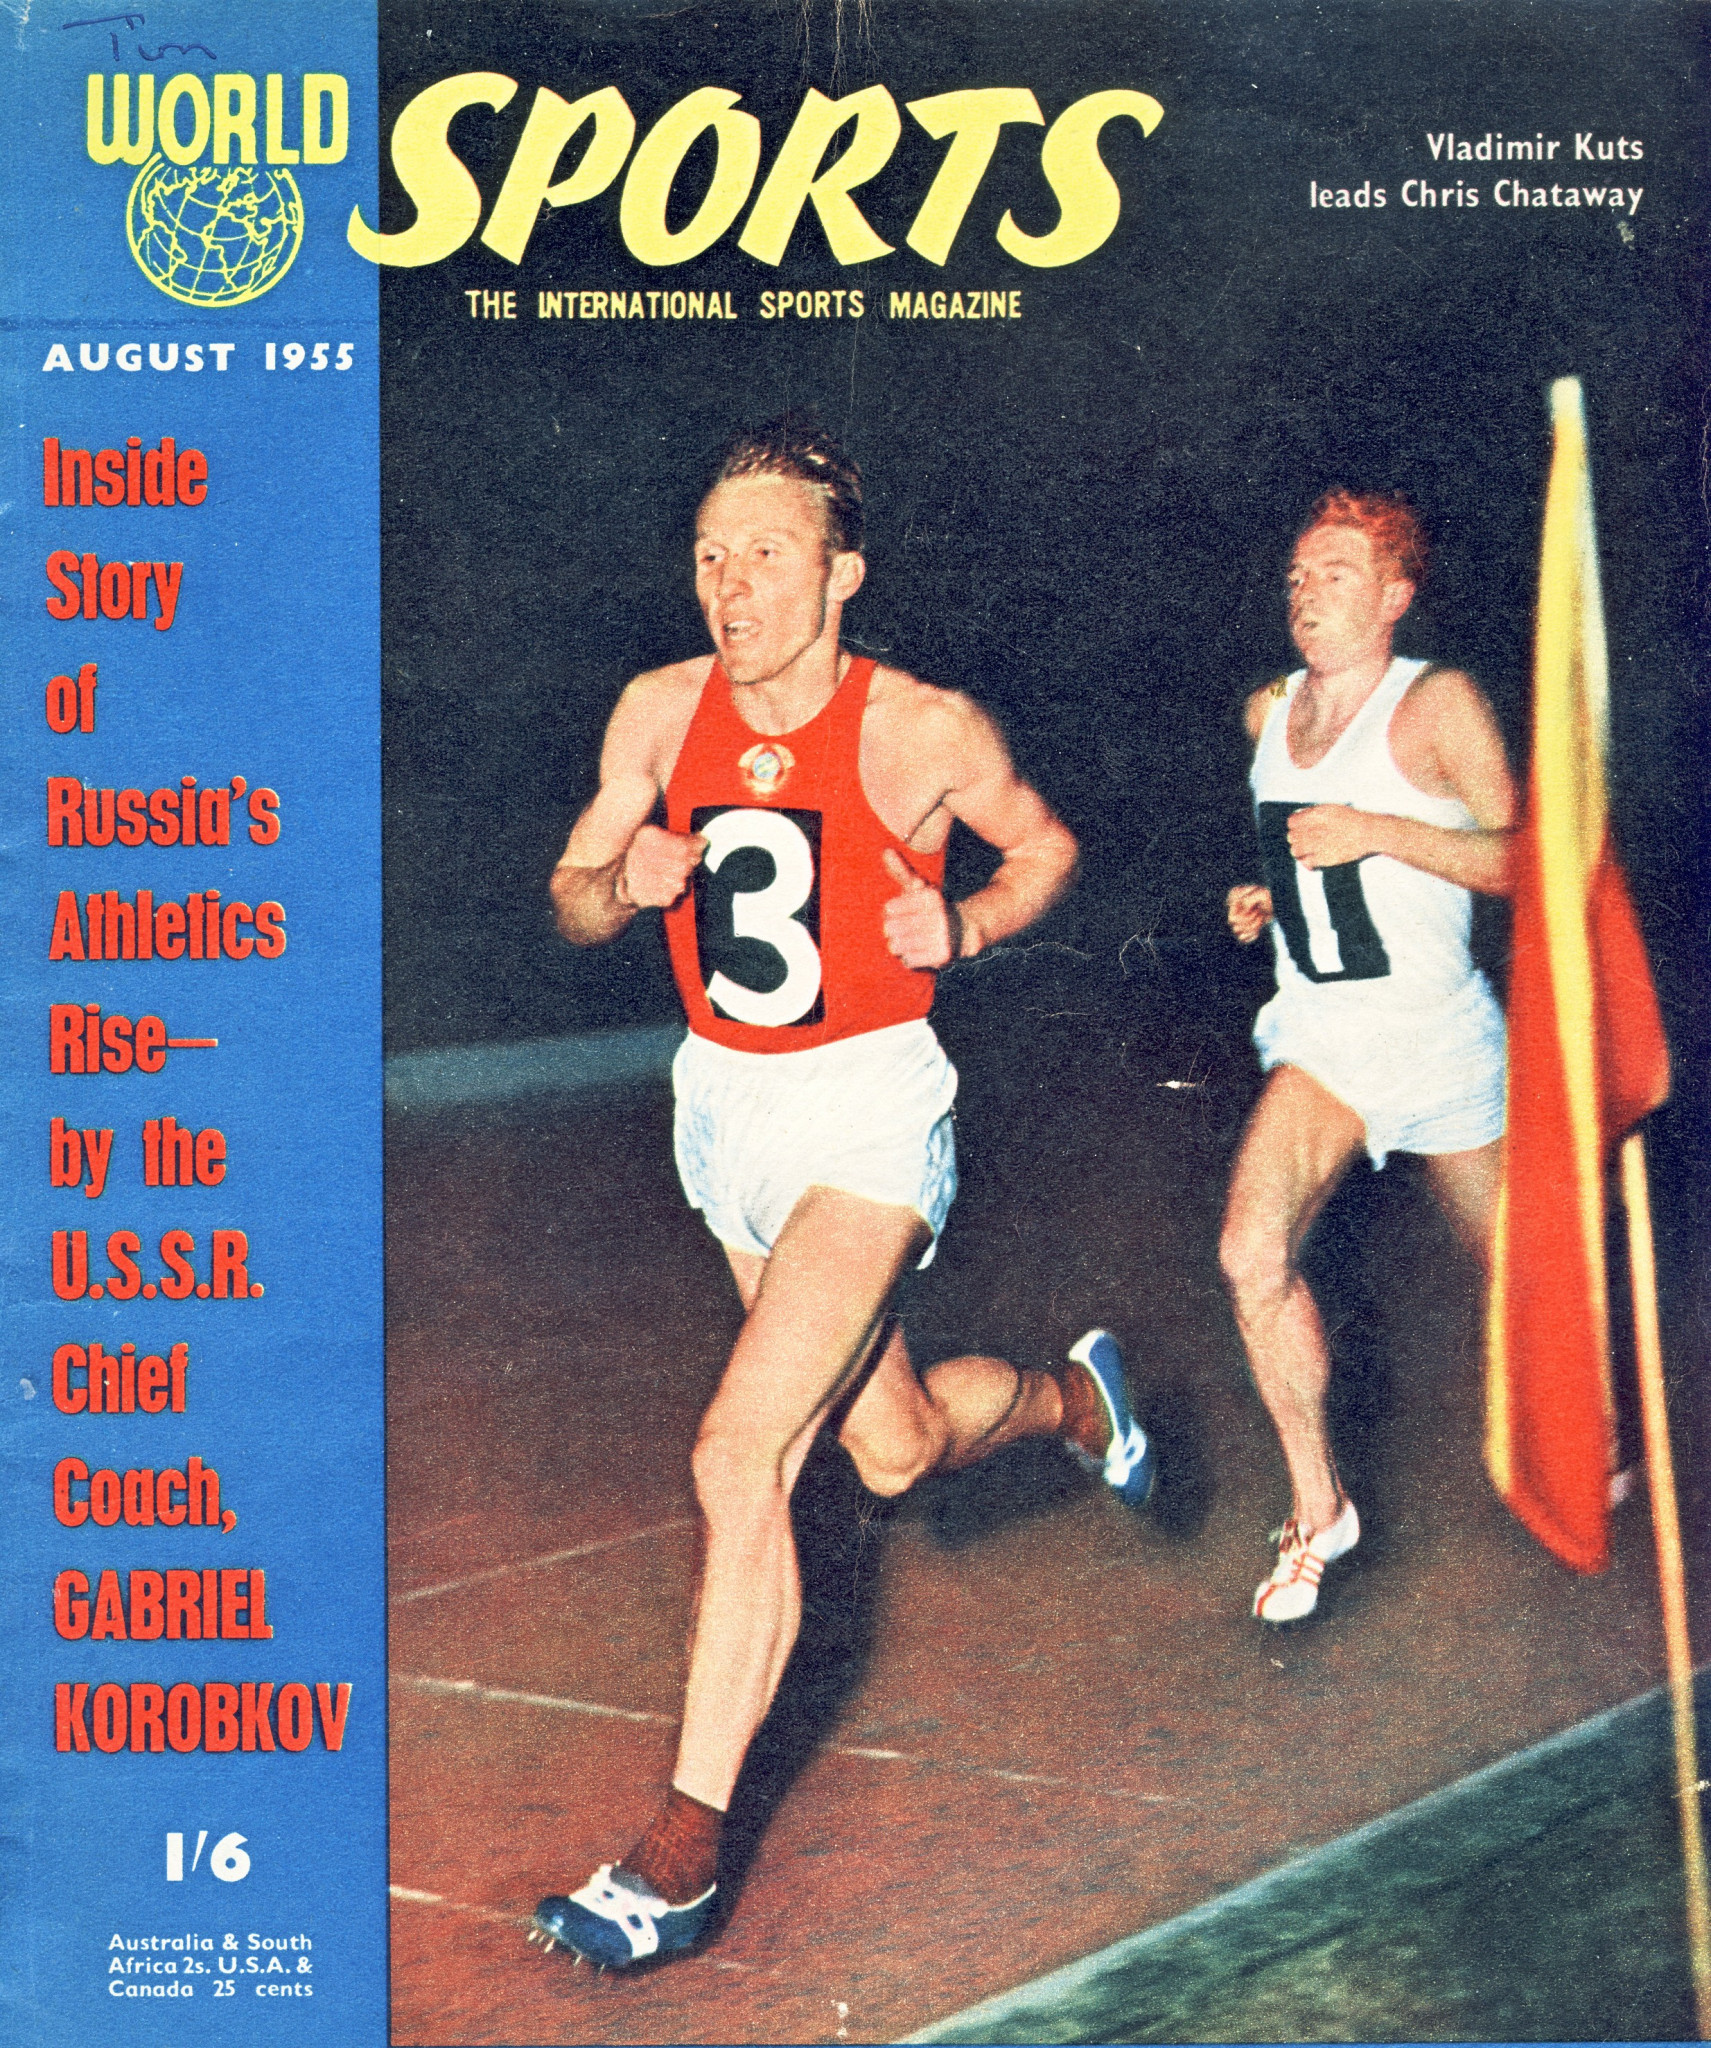 Ukrainian-born middle distance runner Vladimir Kuts is a cover star for western magazine 'World Sports'